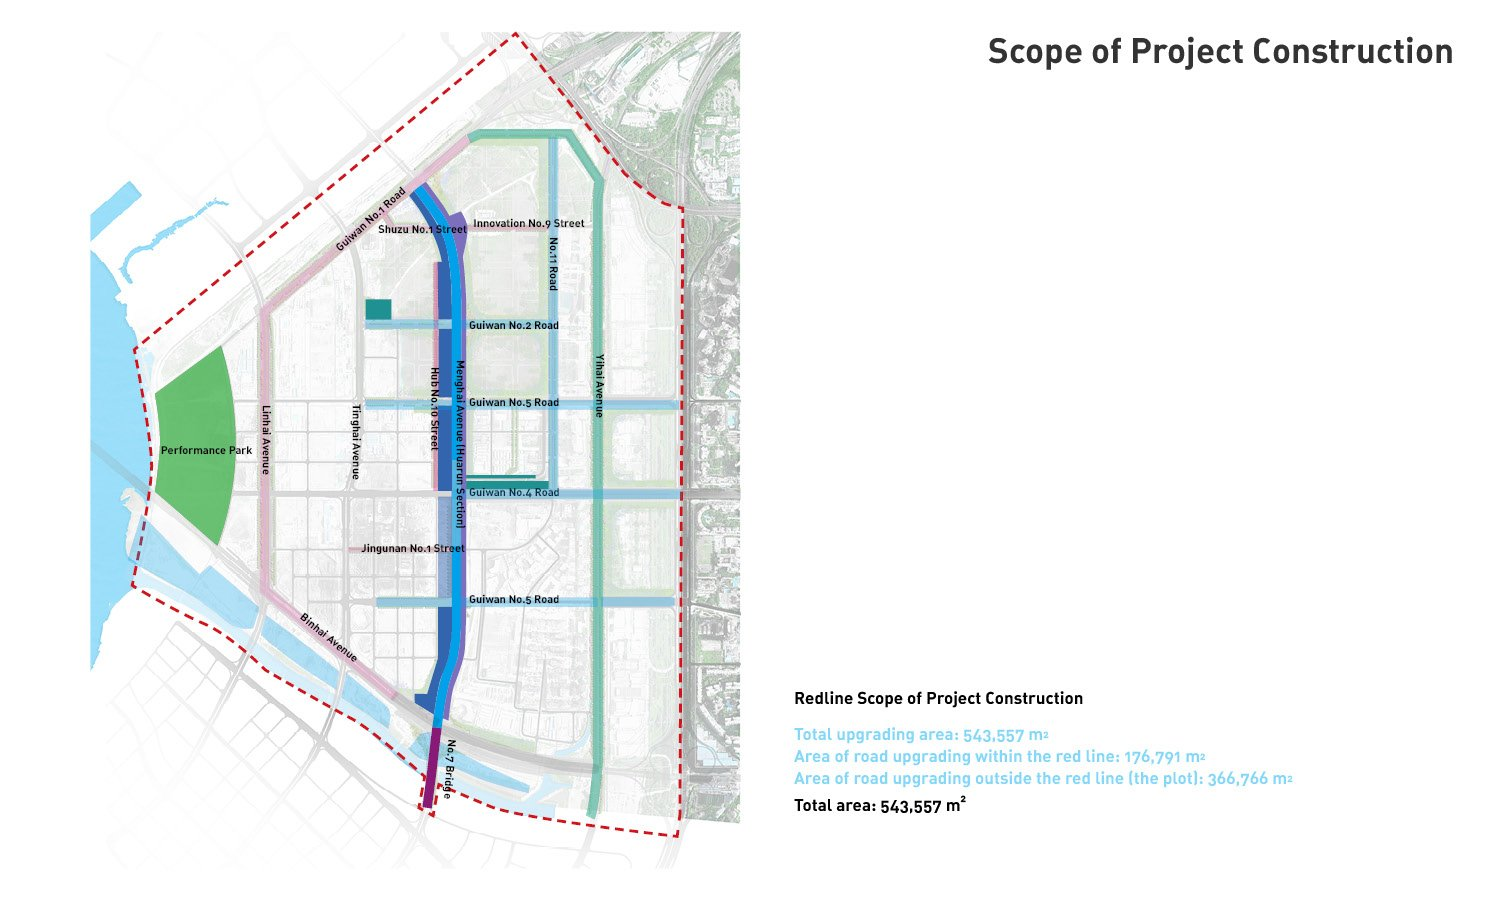 SCOPE OF PROJECT CONSTRUCTION HOPE}